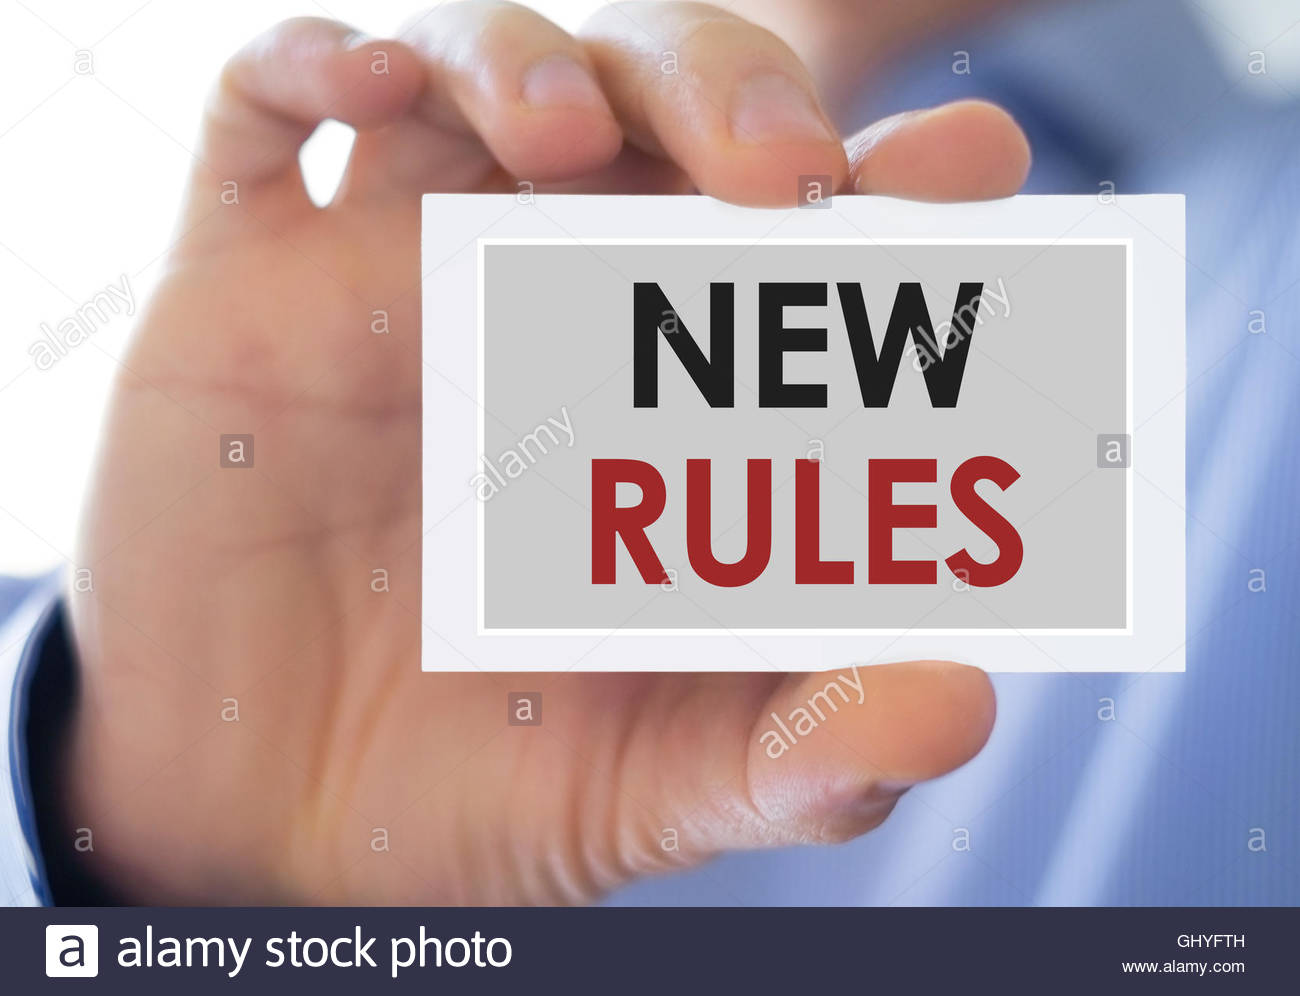 new rules regulations - Stock Image